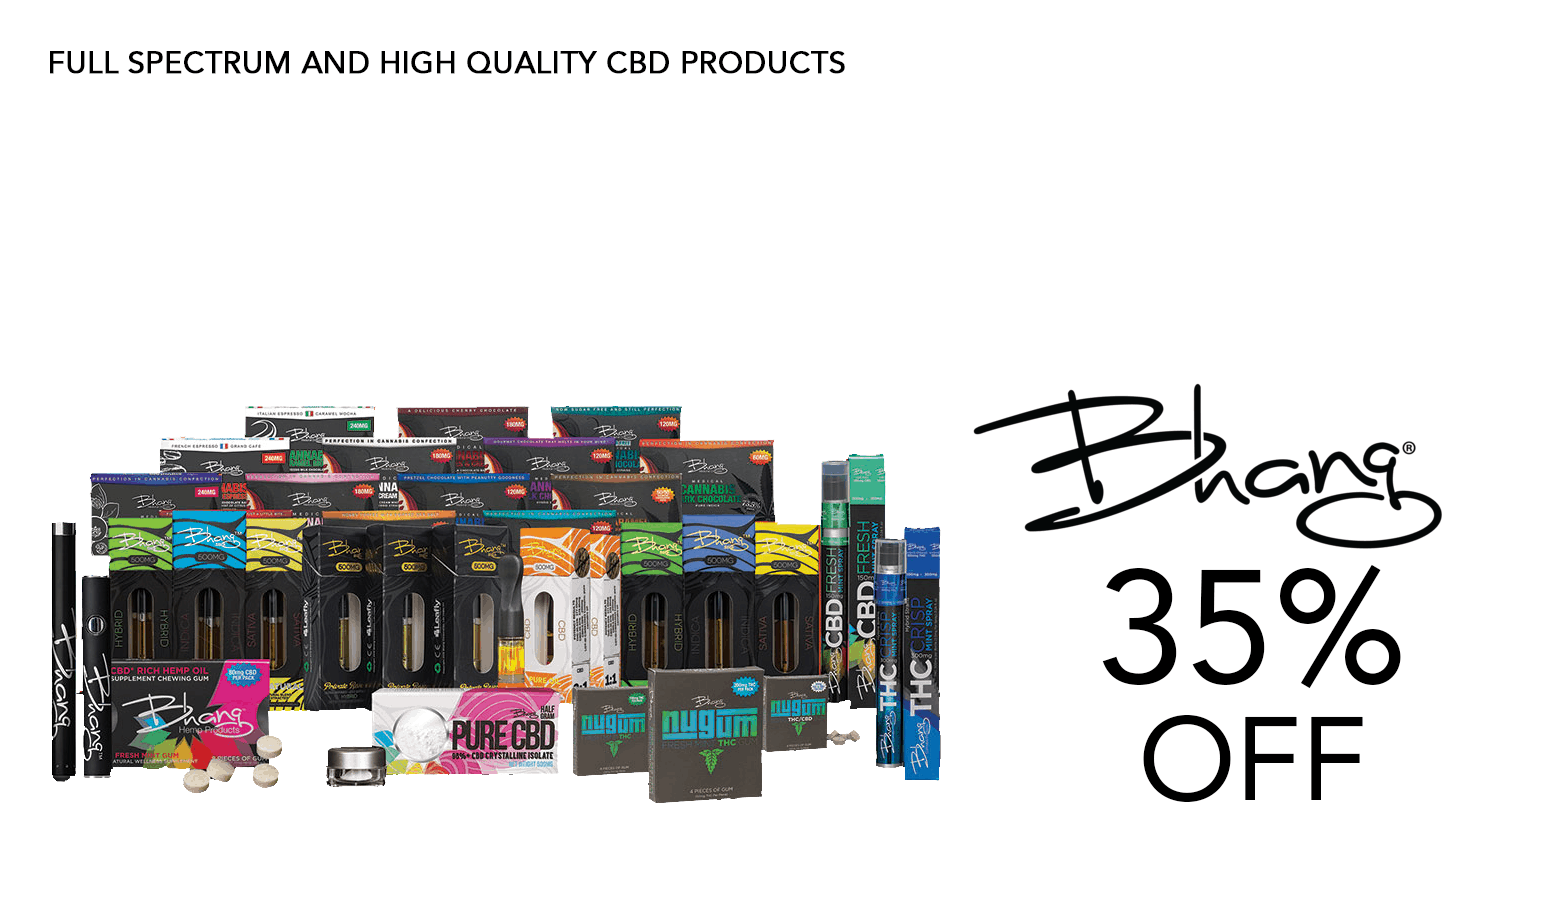 Bhang CBD Coupon Code Offer Discount